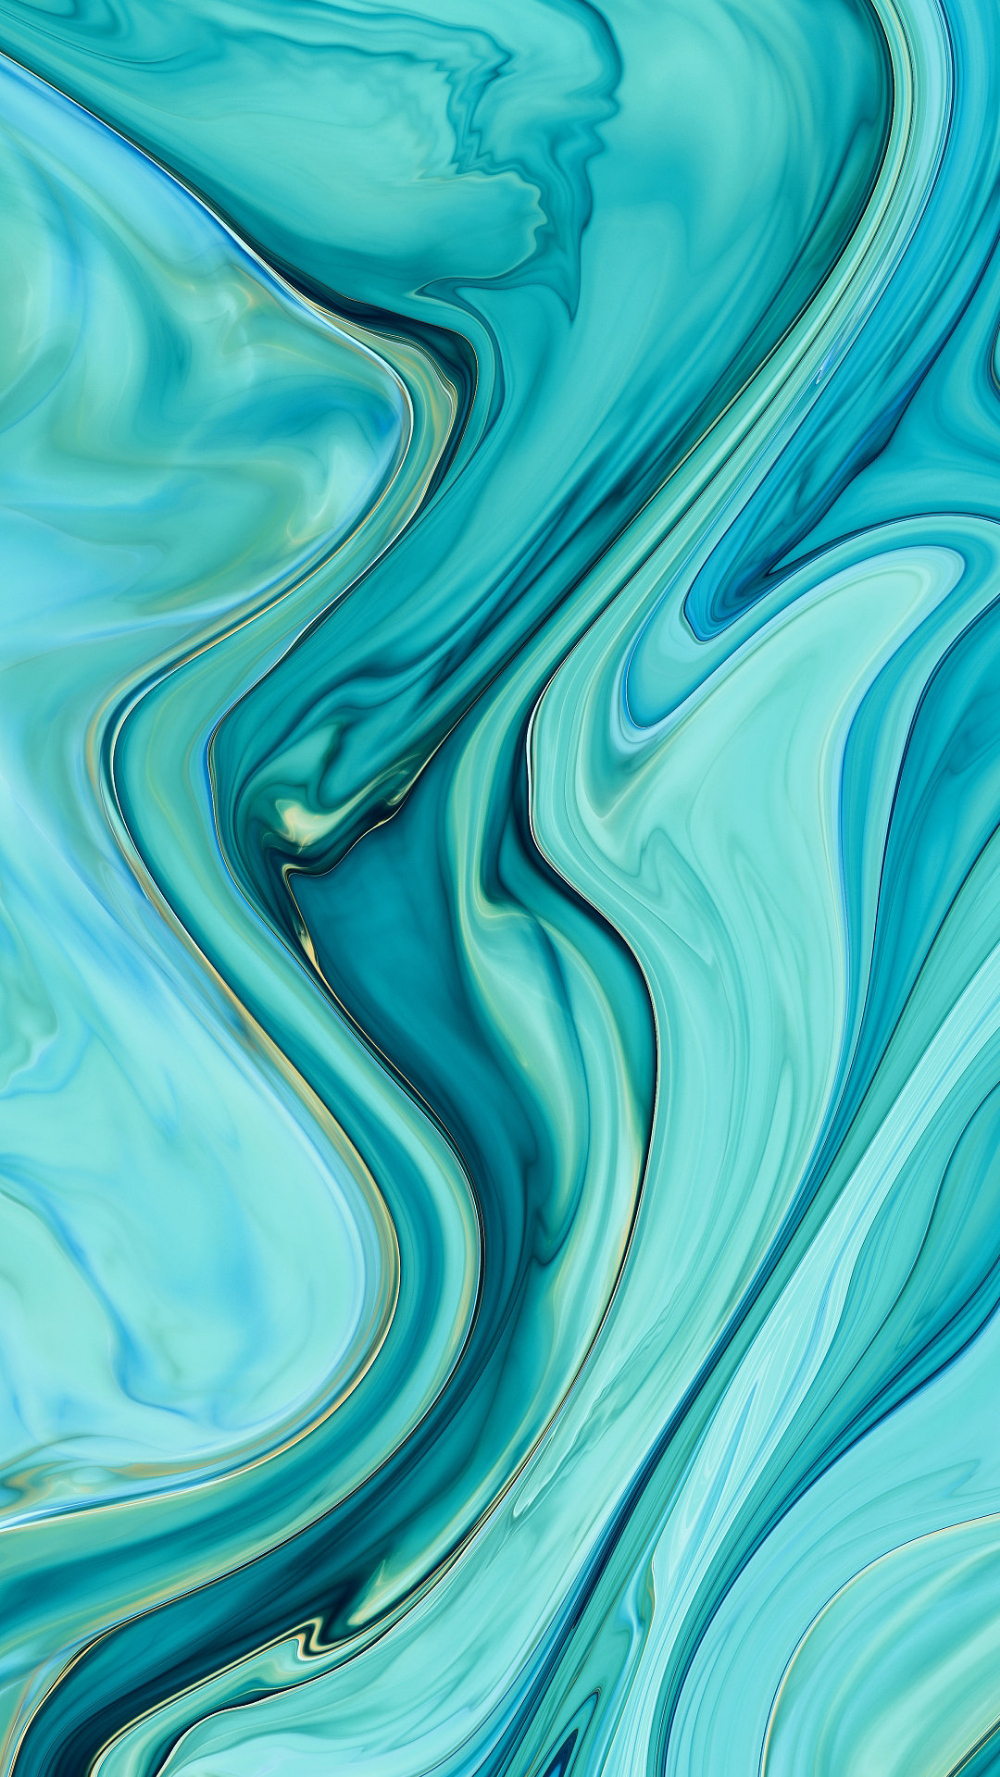 Iphone Blue Green Winding Gradient Visual Wallpaper Background